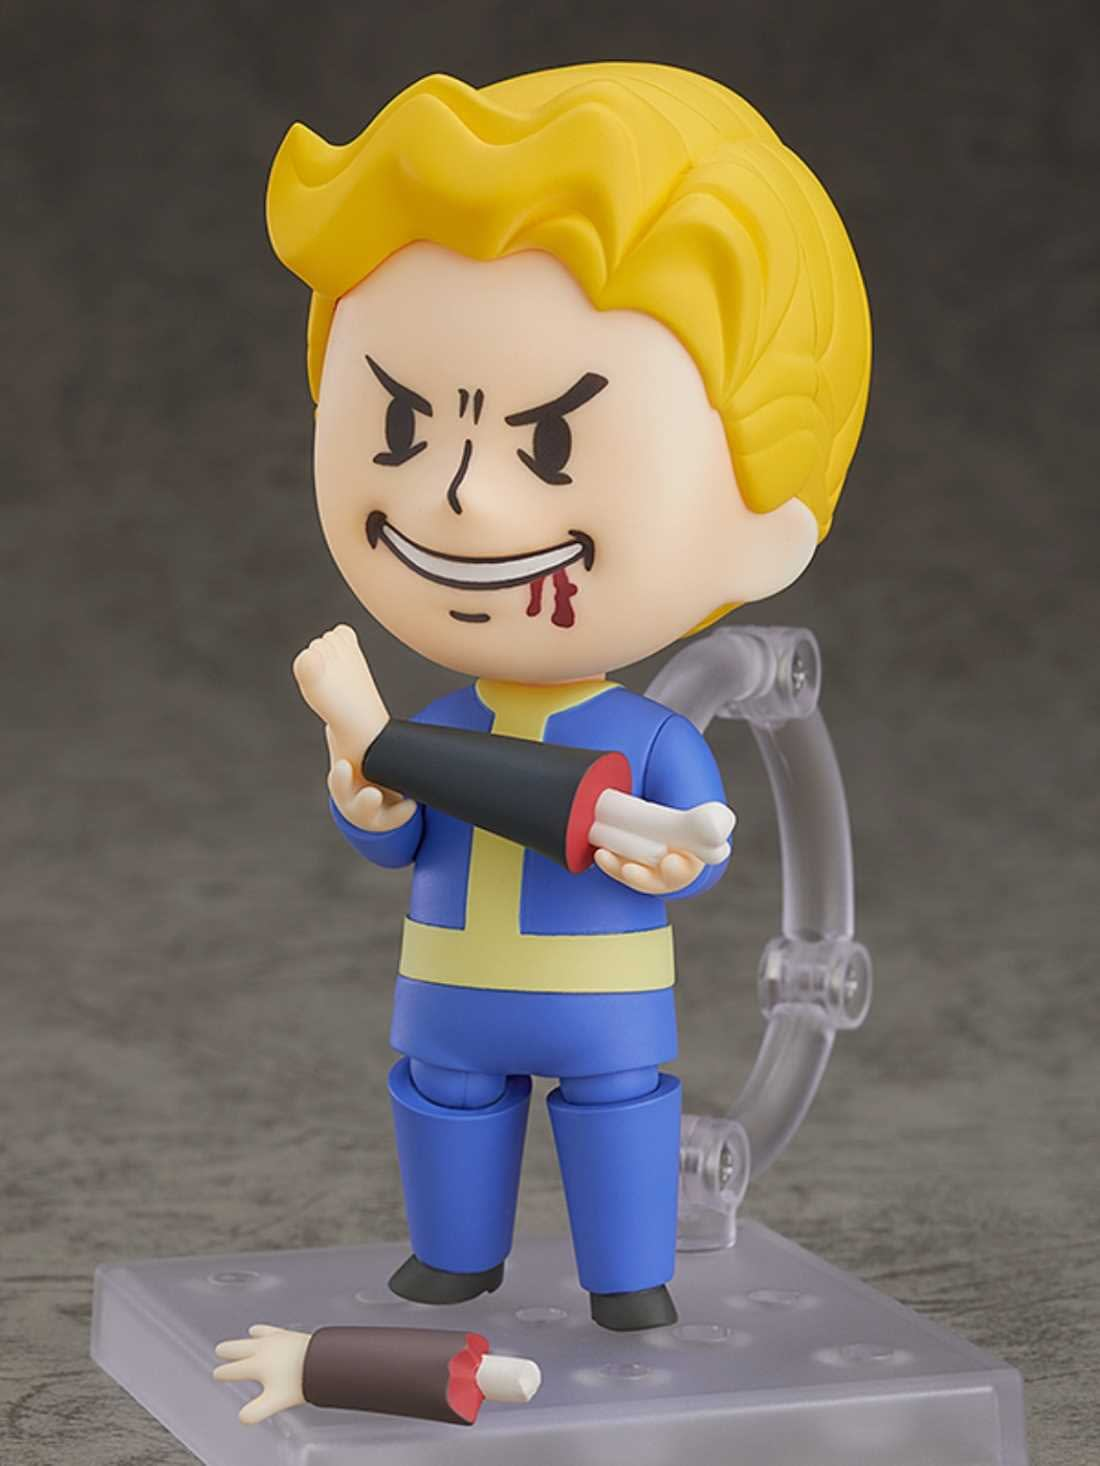 Leave the Vault with New Vault Boy Nendoroid from Good Smile Company